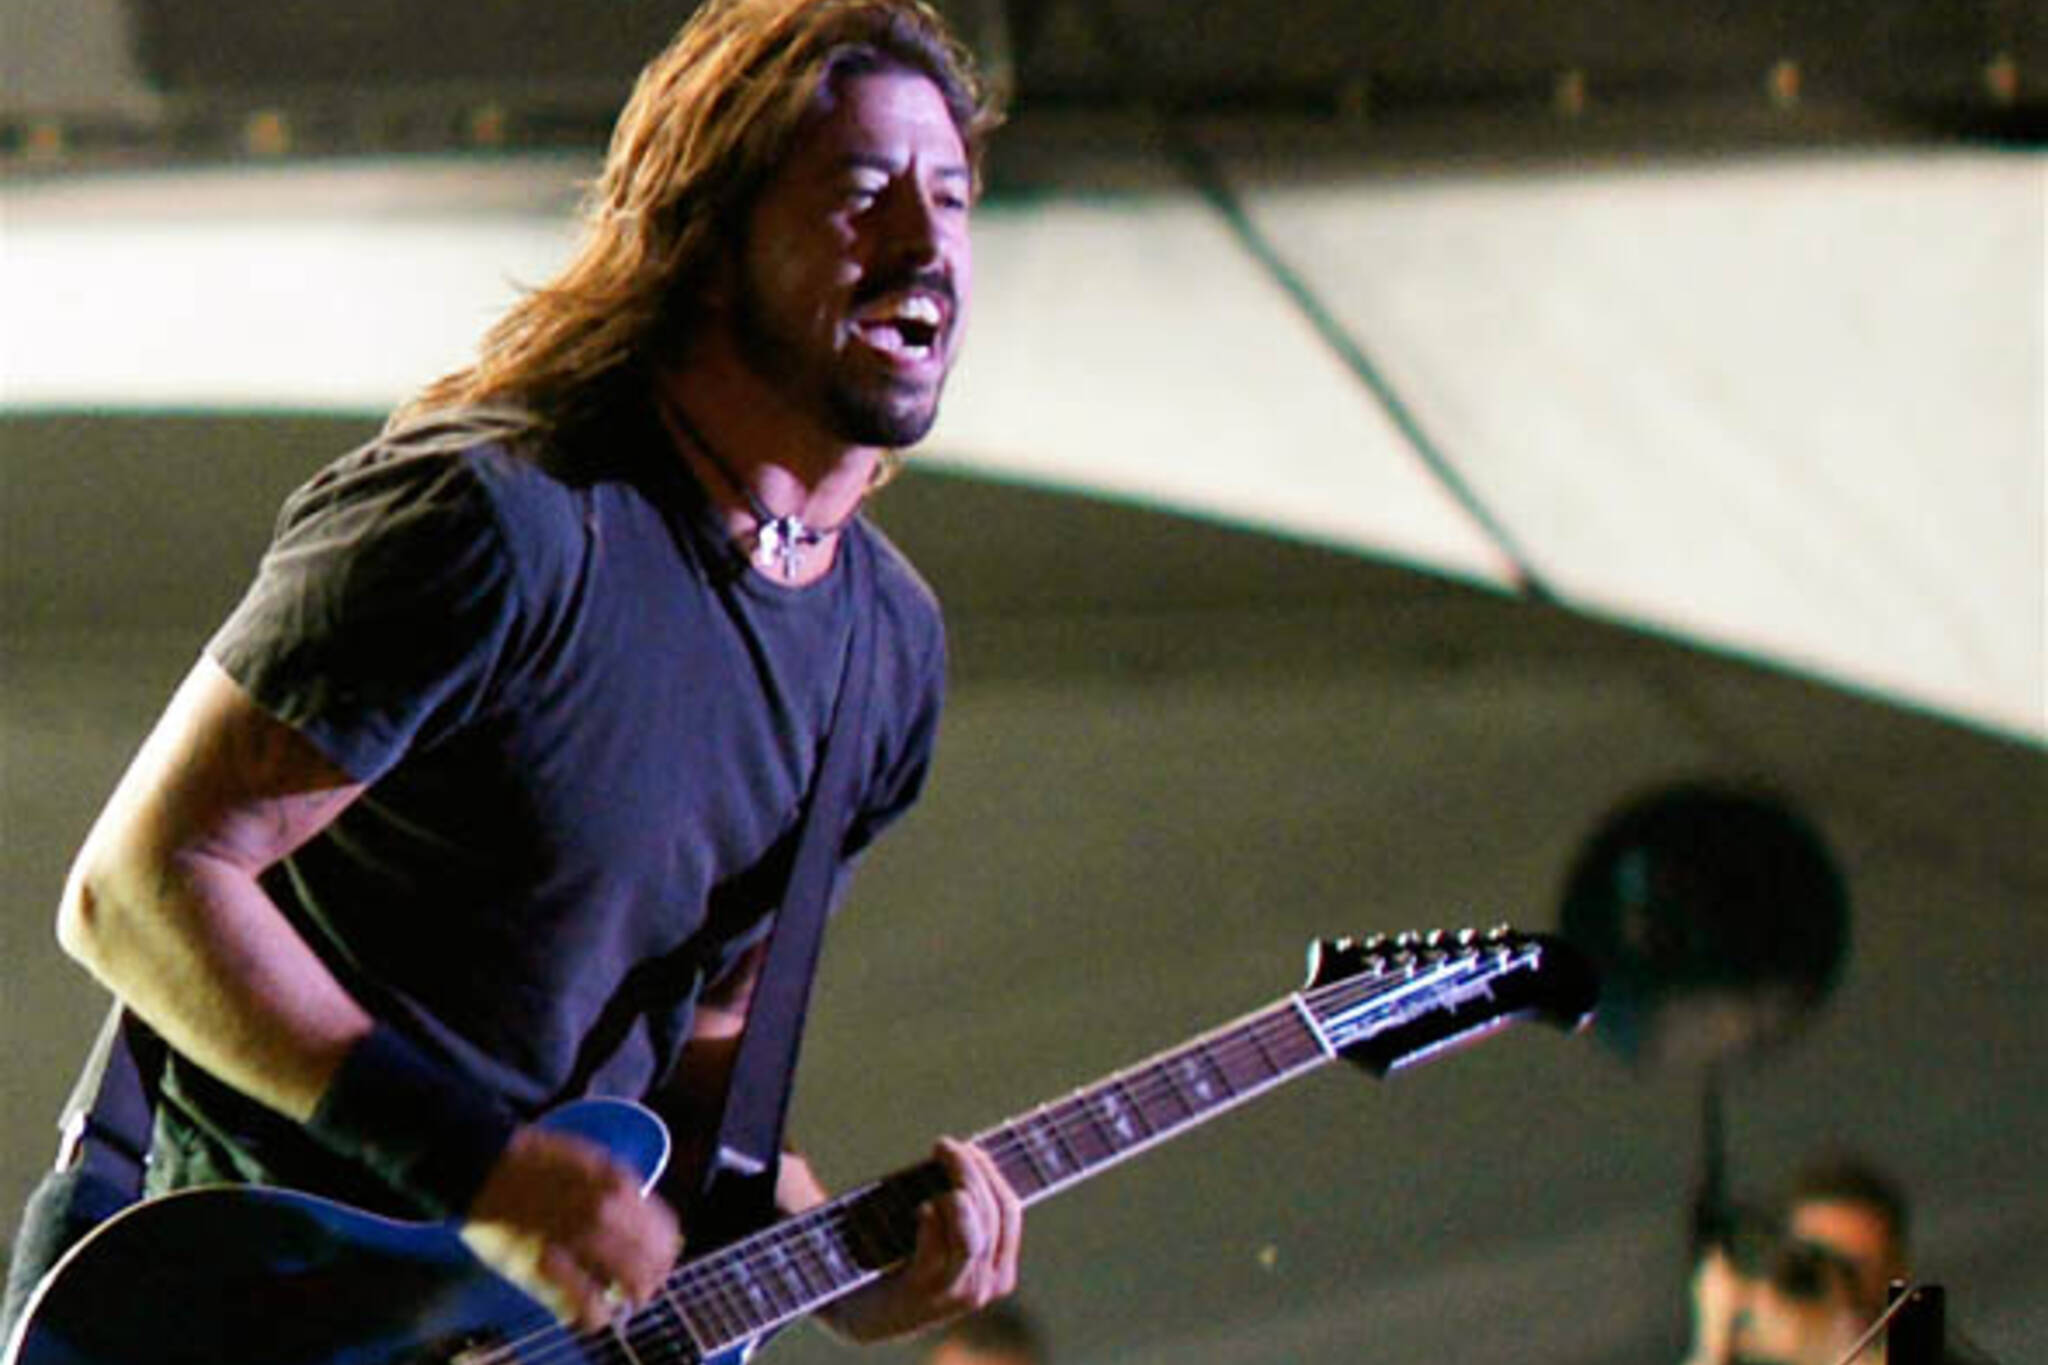 Dave Grohl of Foo Fighters at Virgin Music Festival in Toronto